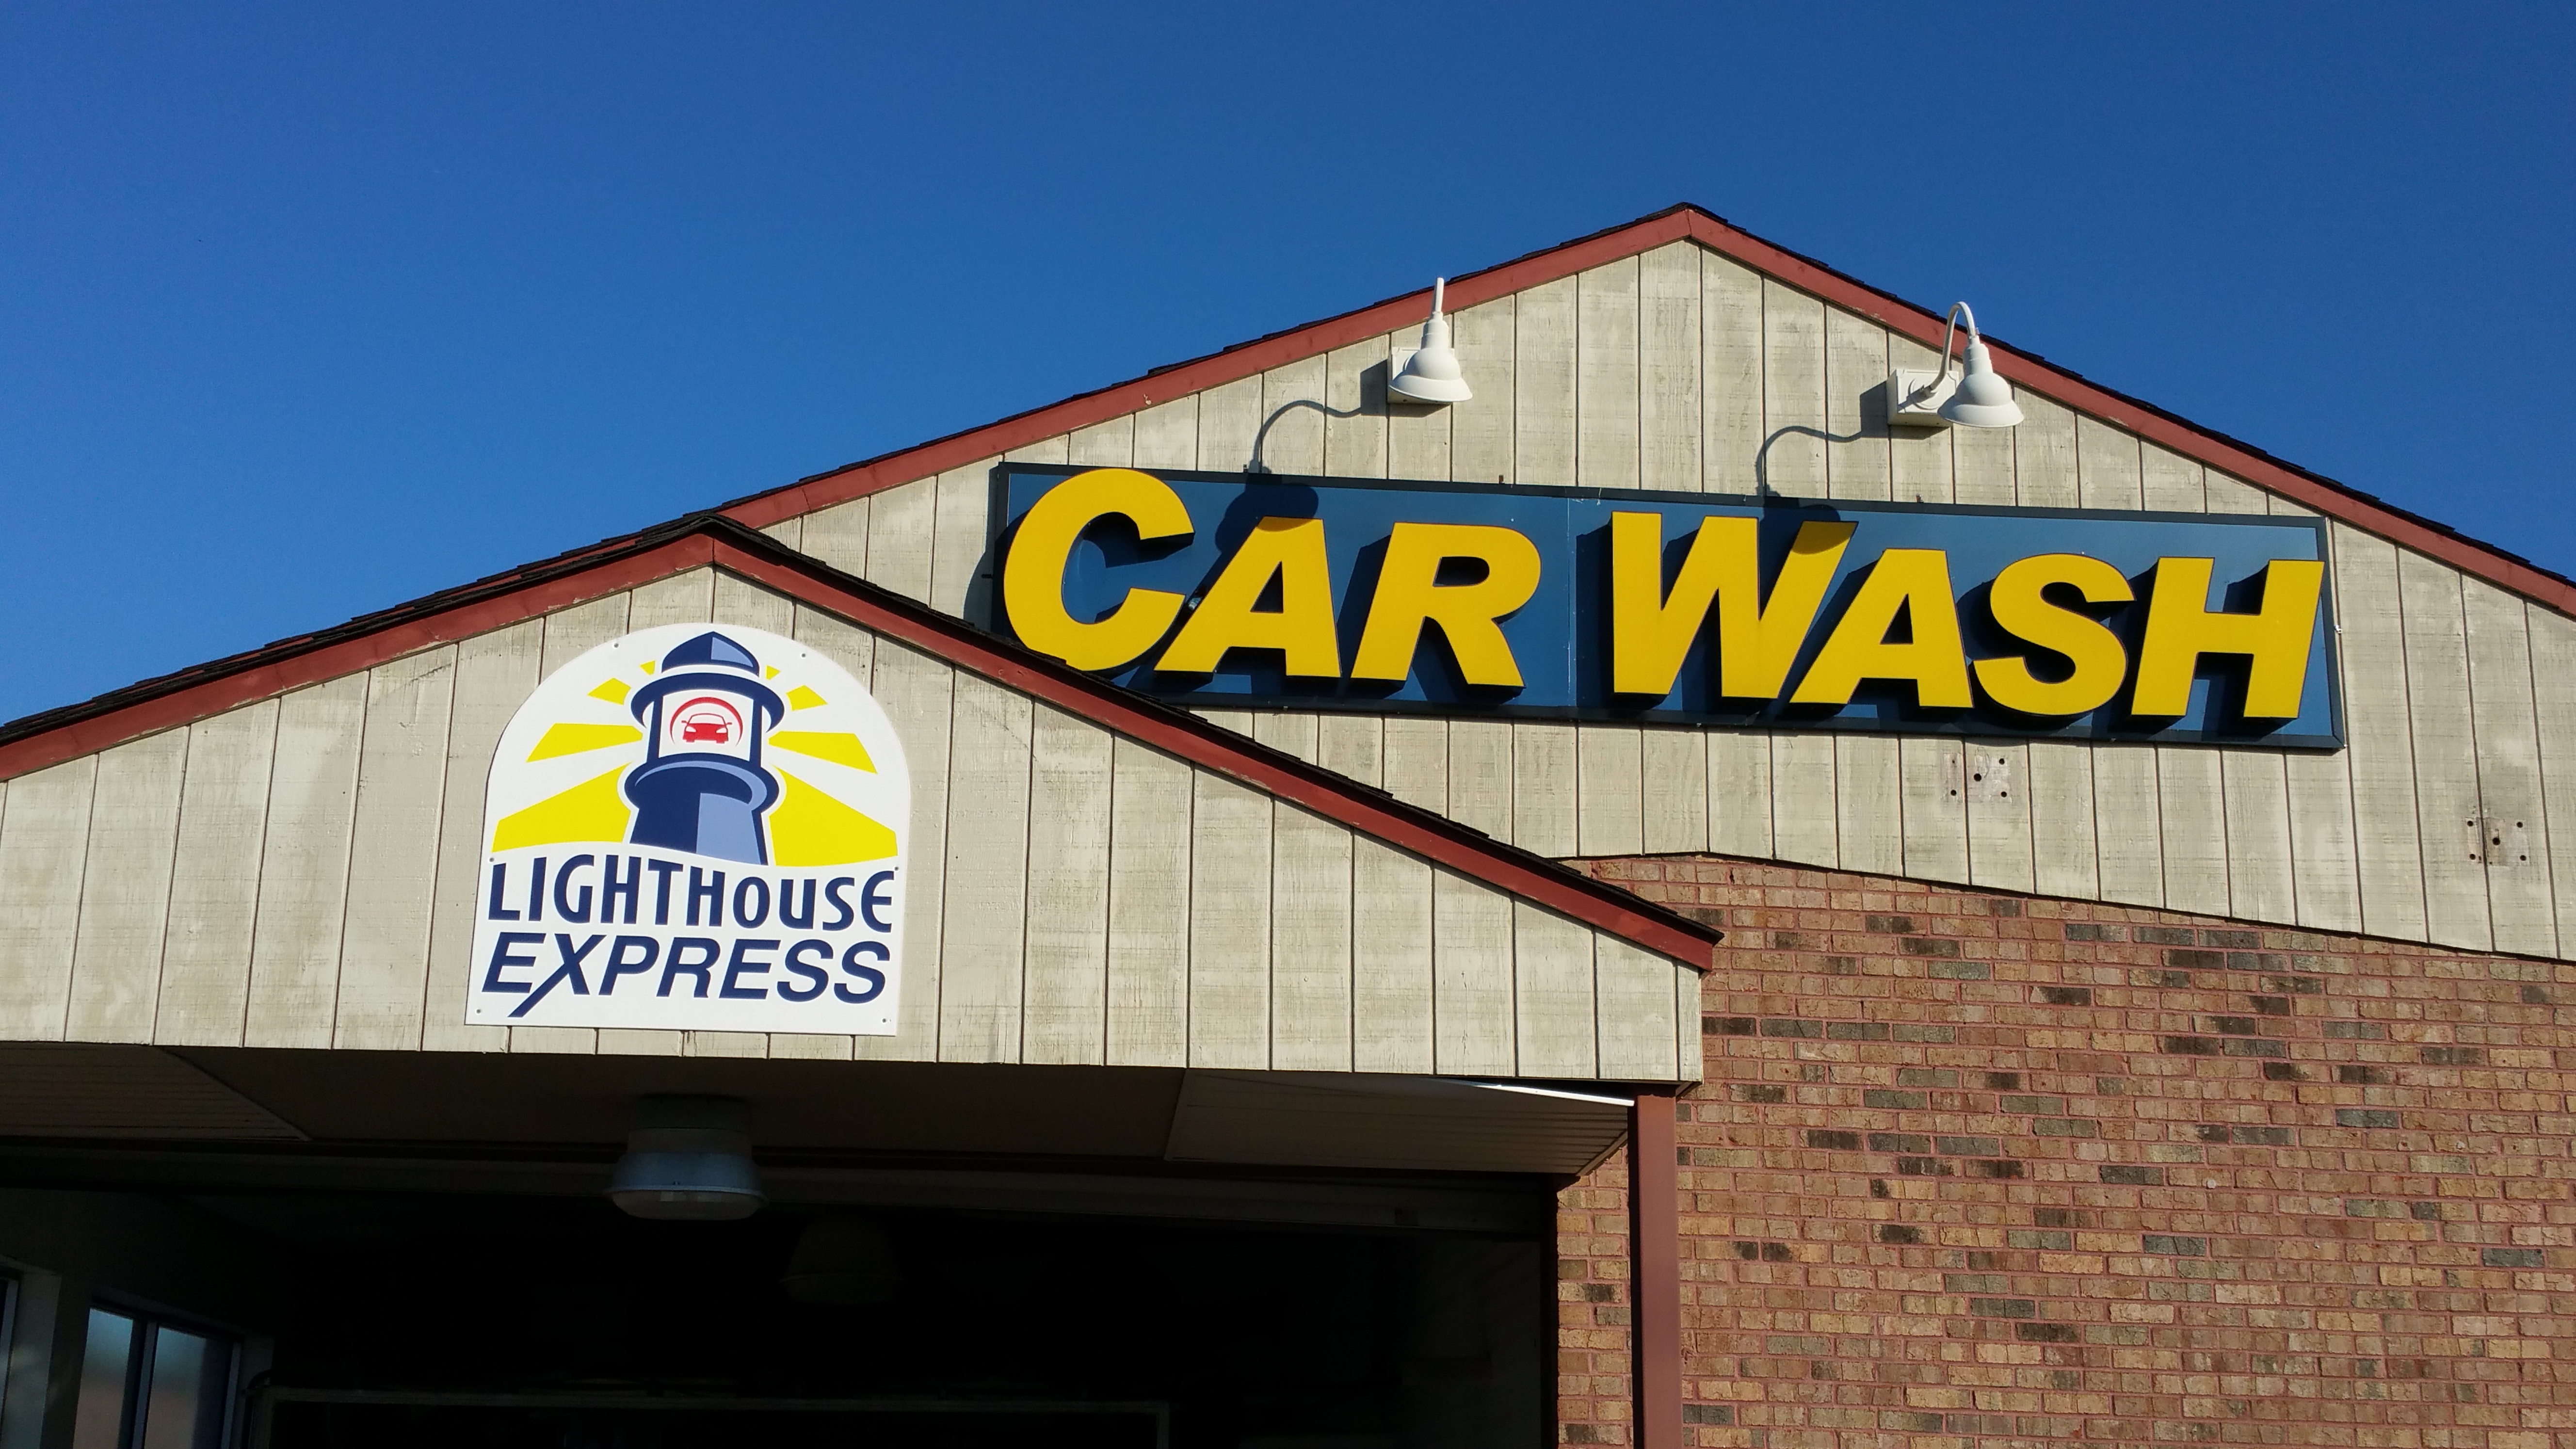 Lighthouse Express Car Wash Conyers location